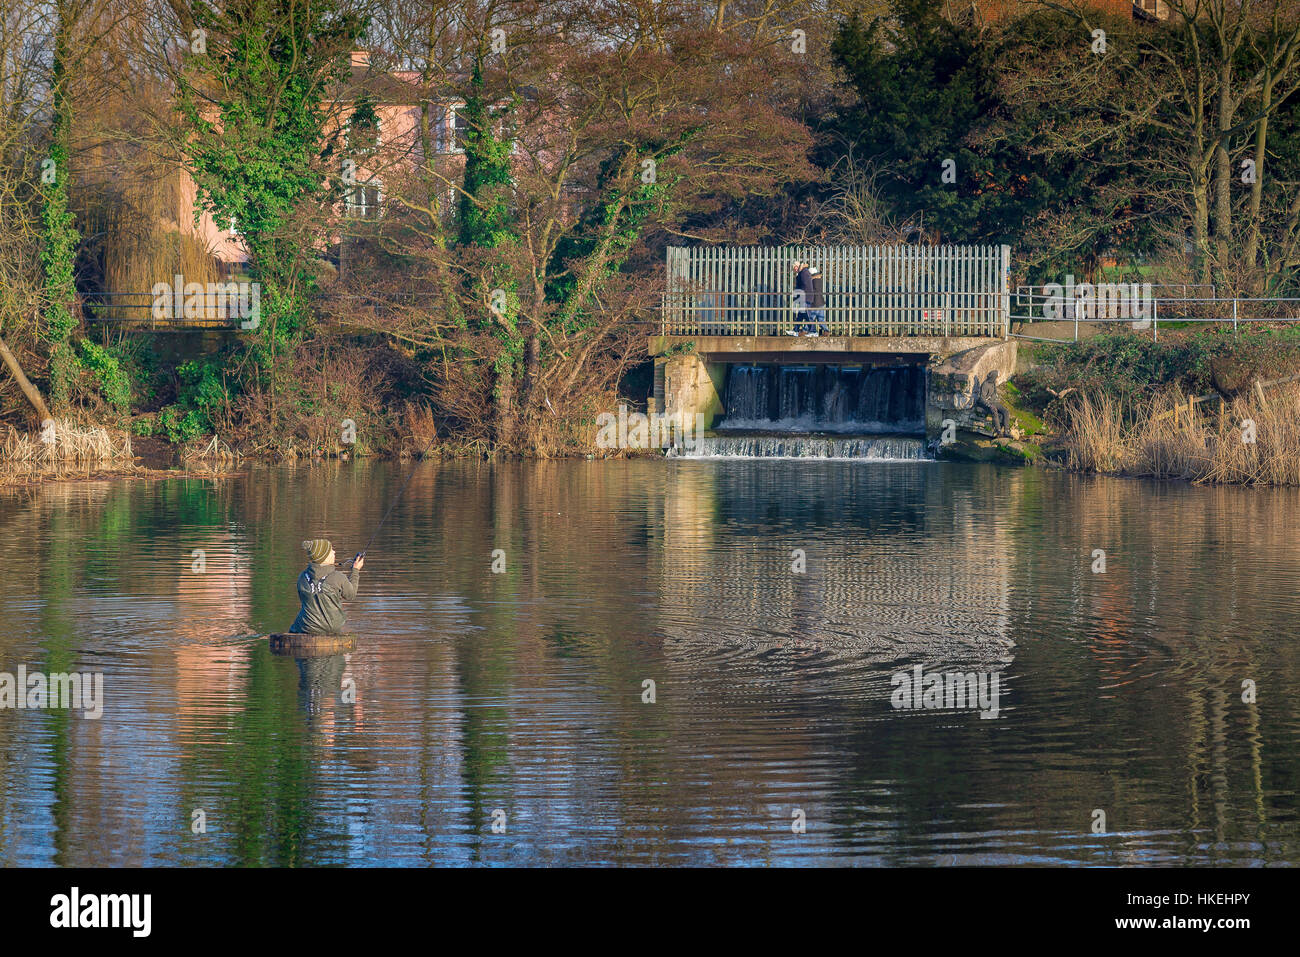 A young man fishes in a freshwater pool along the River Stour near Sudbury in Suffolk, Babergh district, UK. - Stock Image